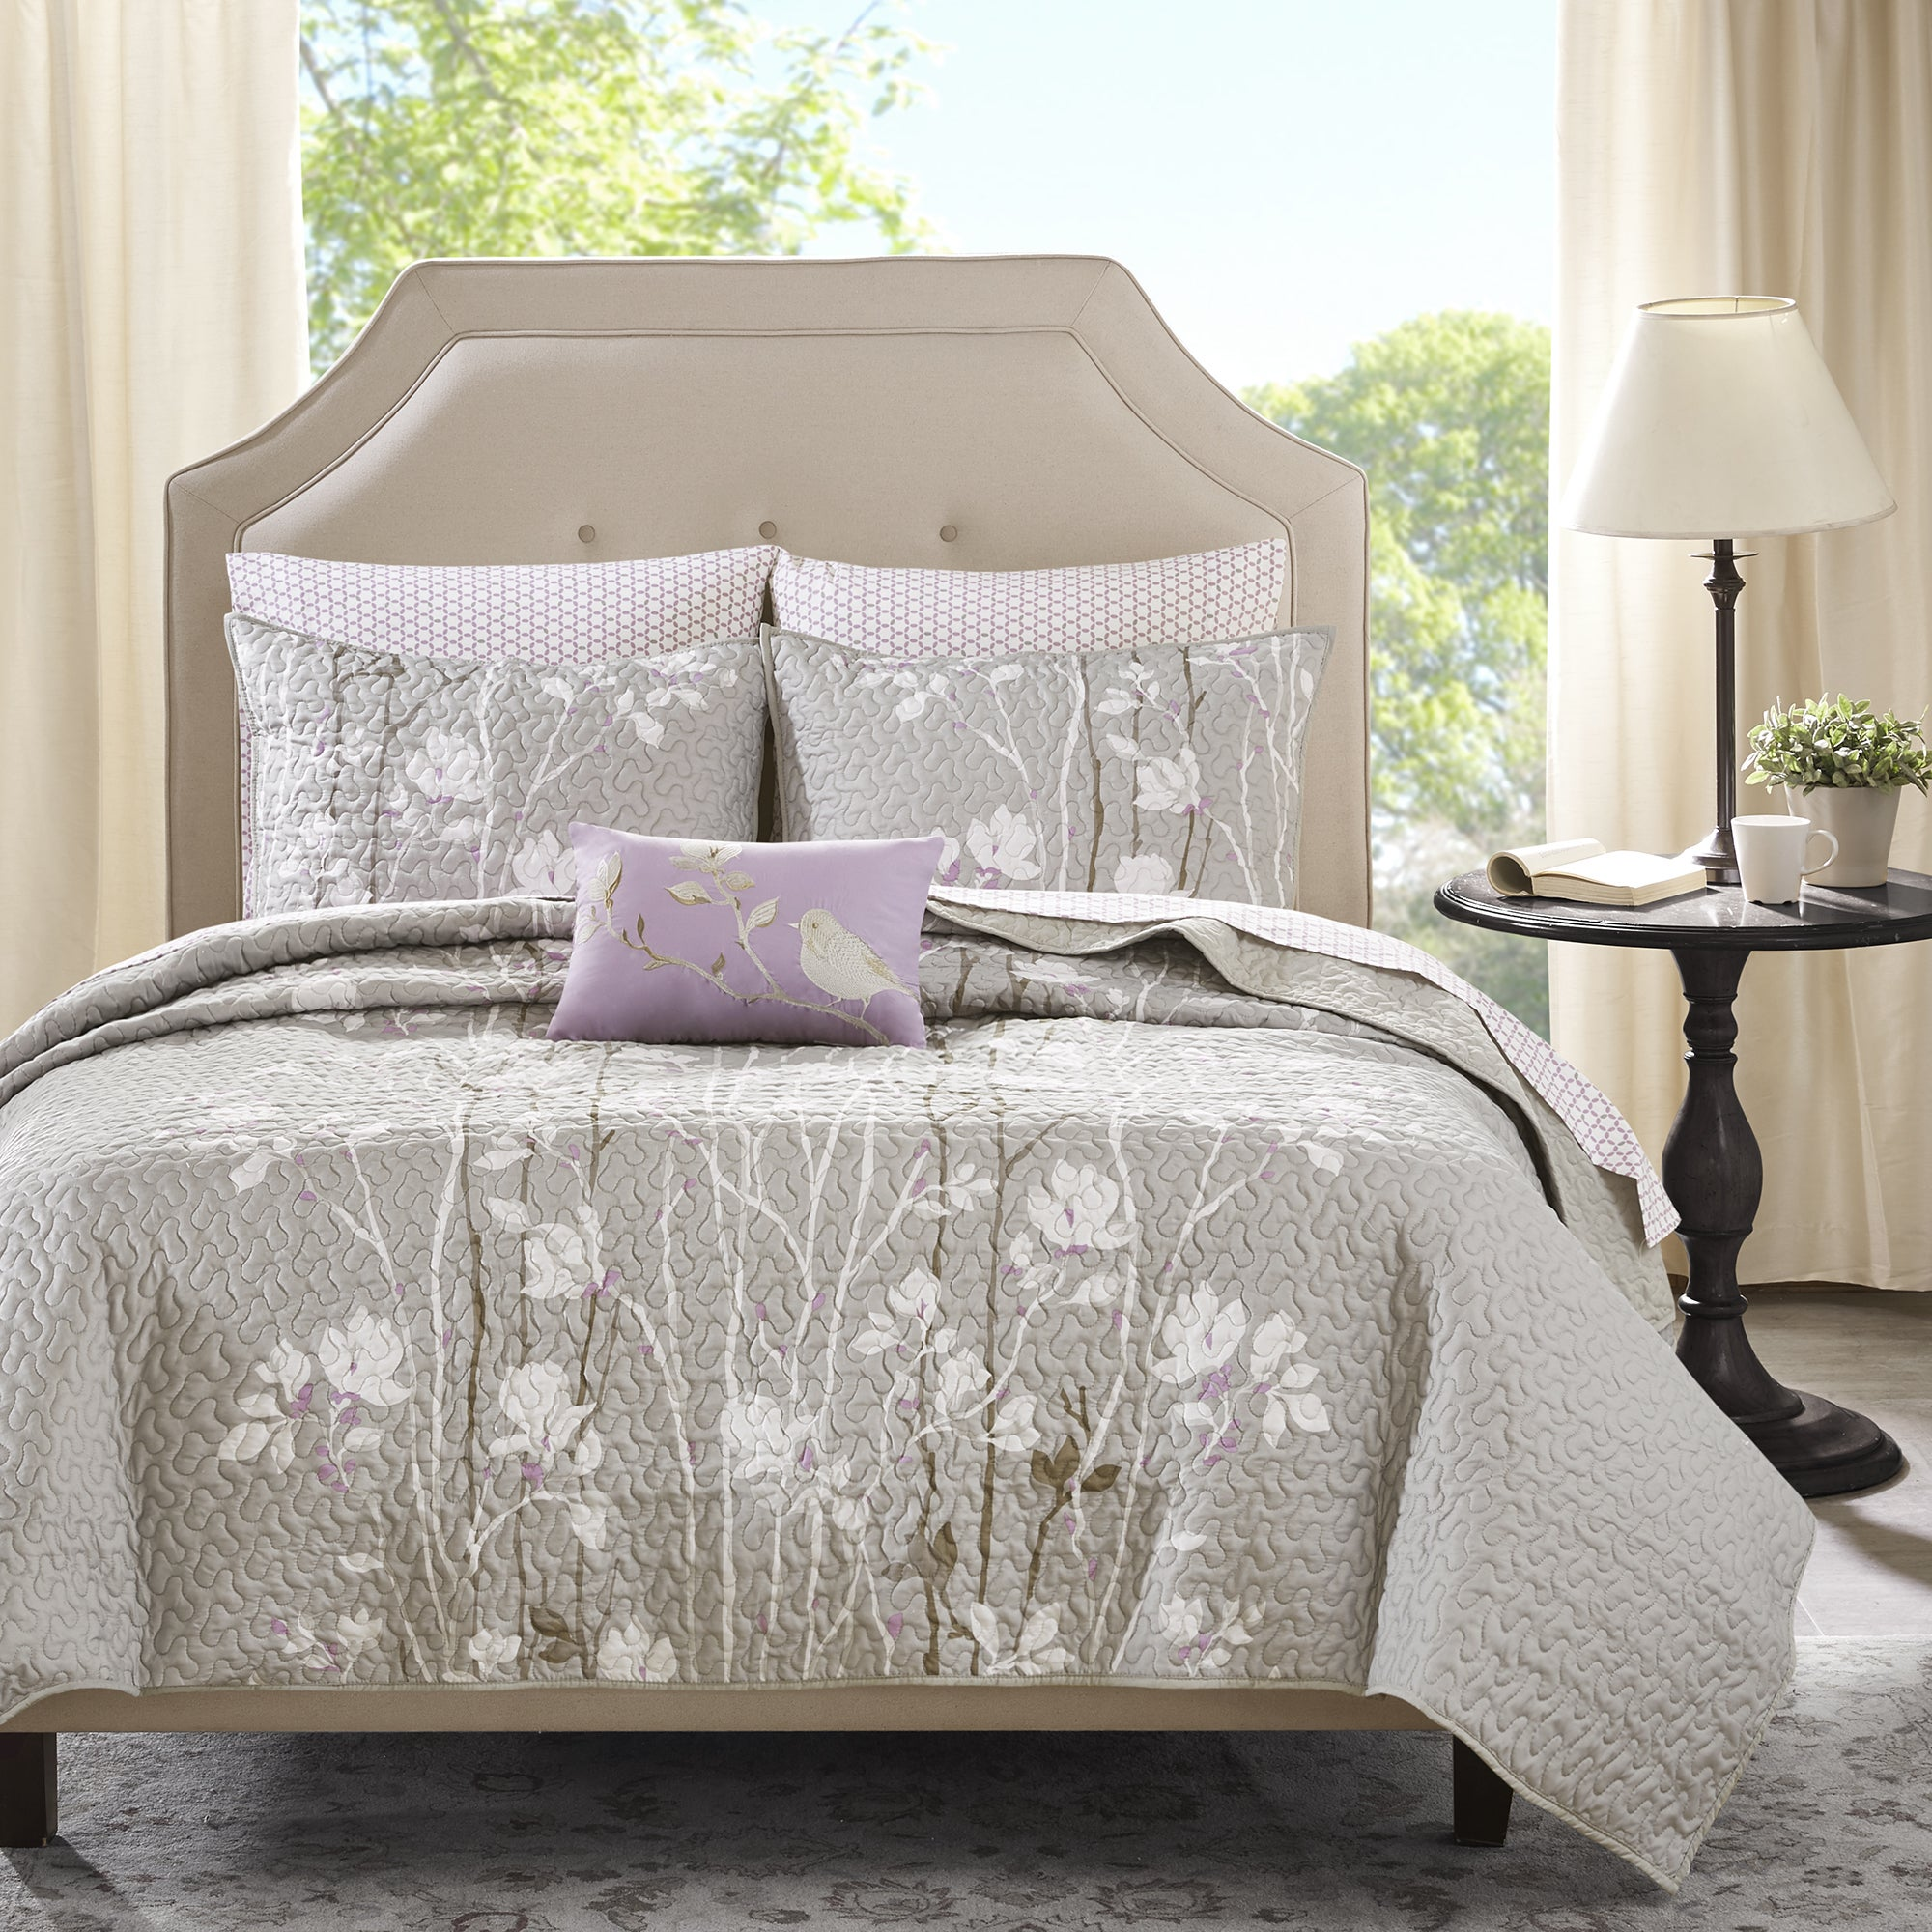 bedding overstock park suede shipping bed comforter brewer set product on orders bath madison free com